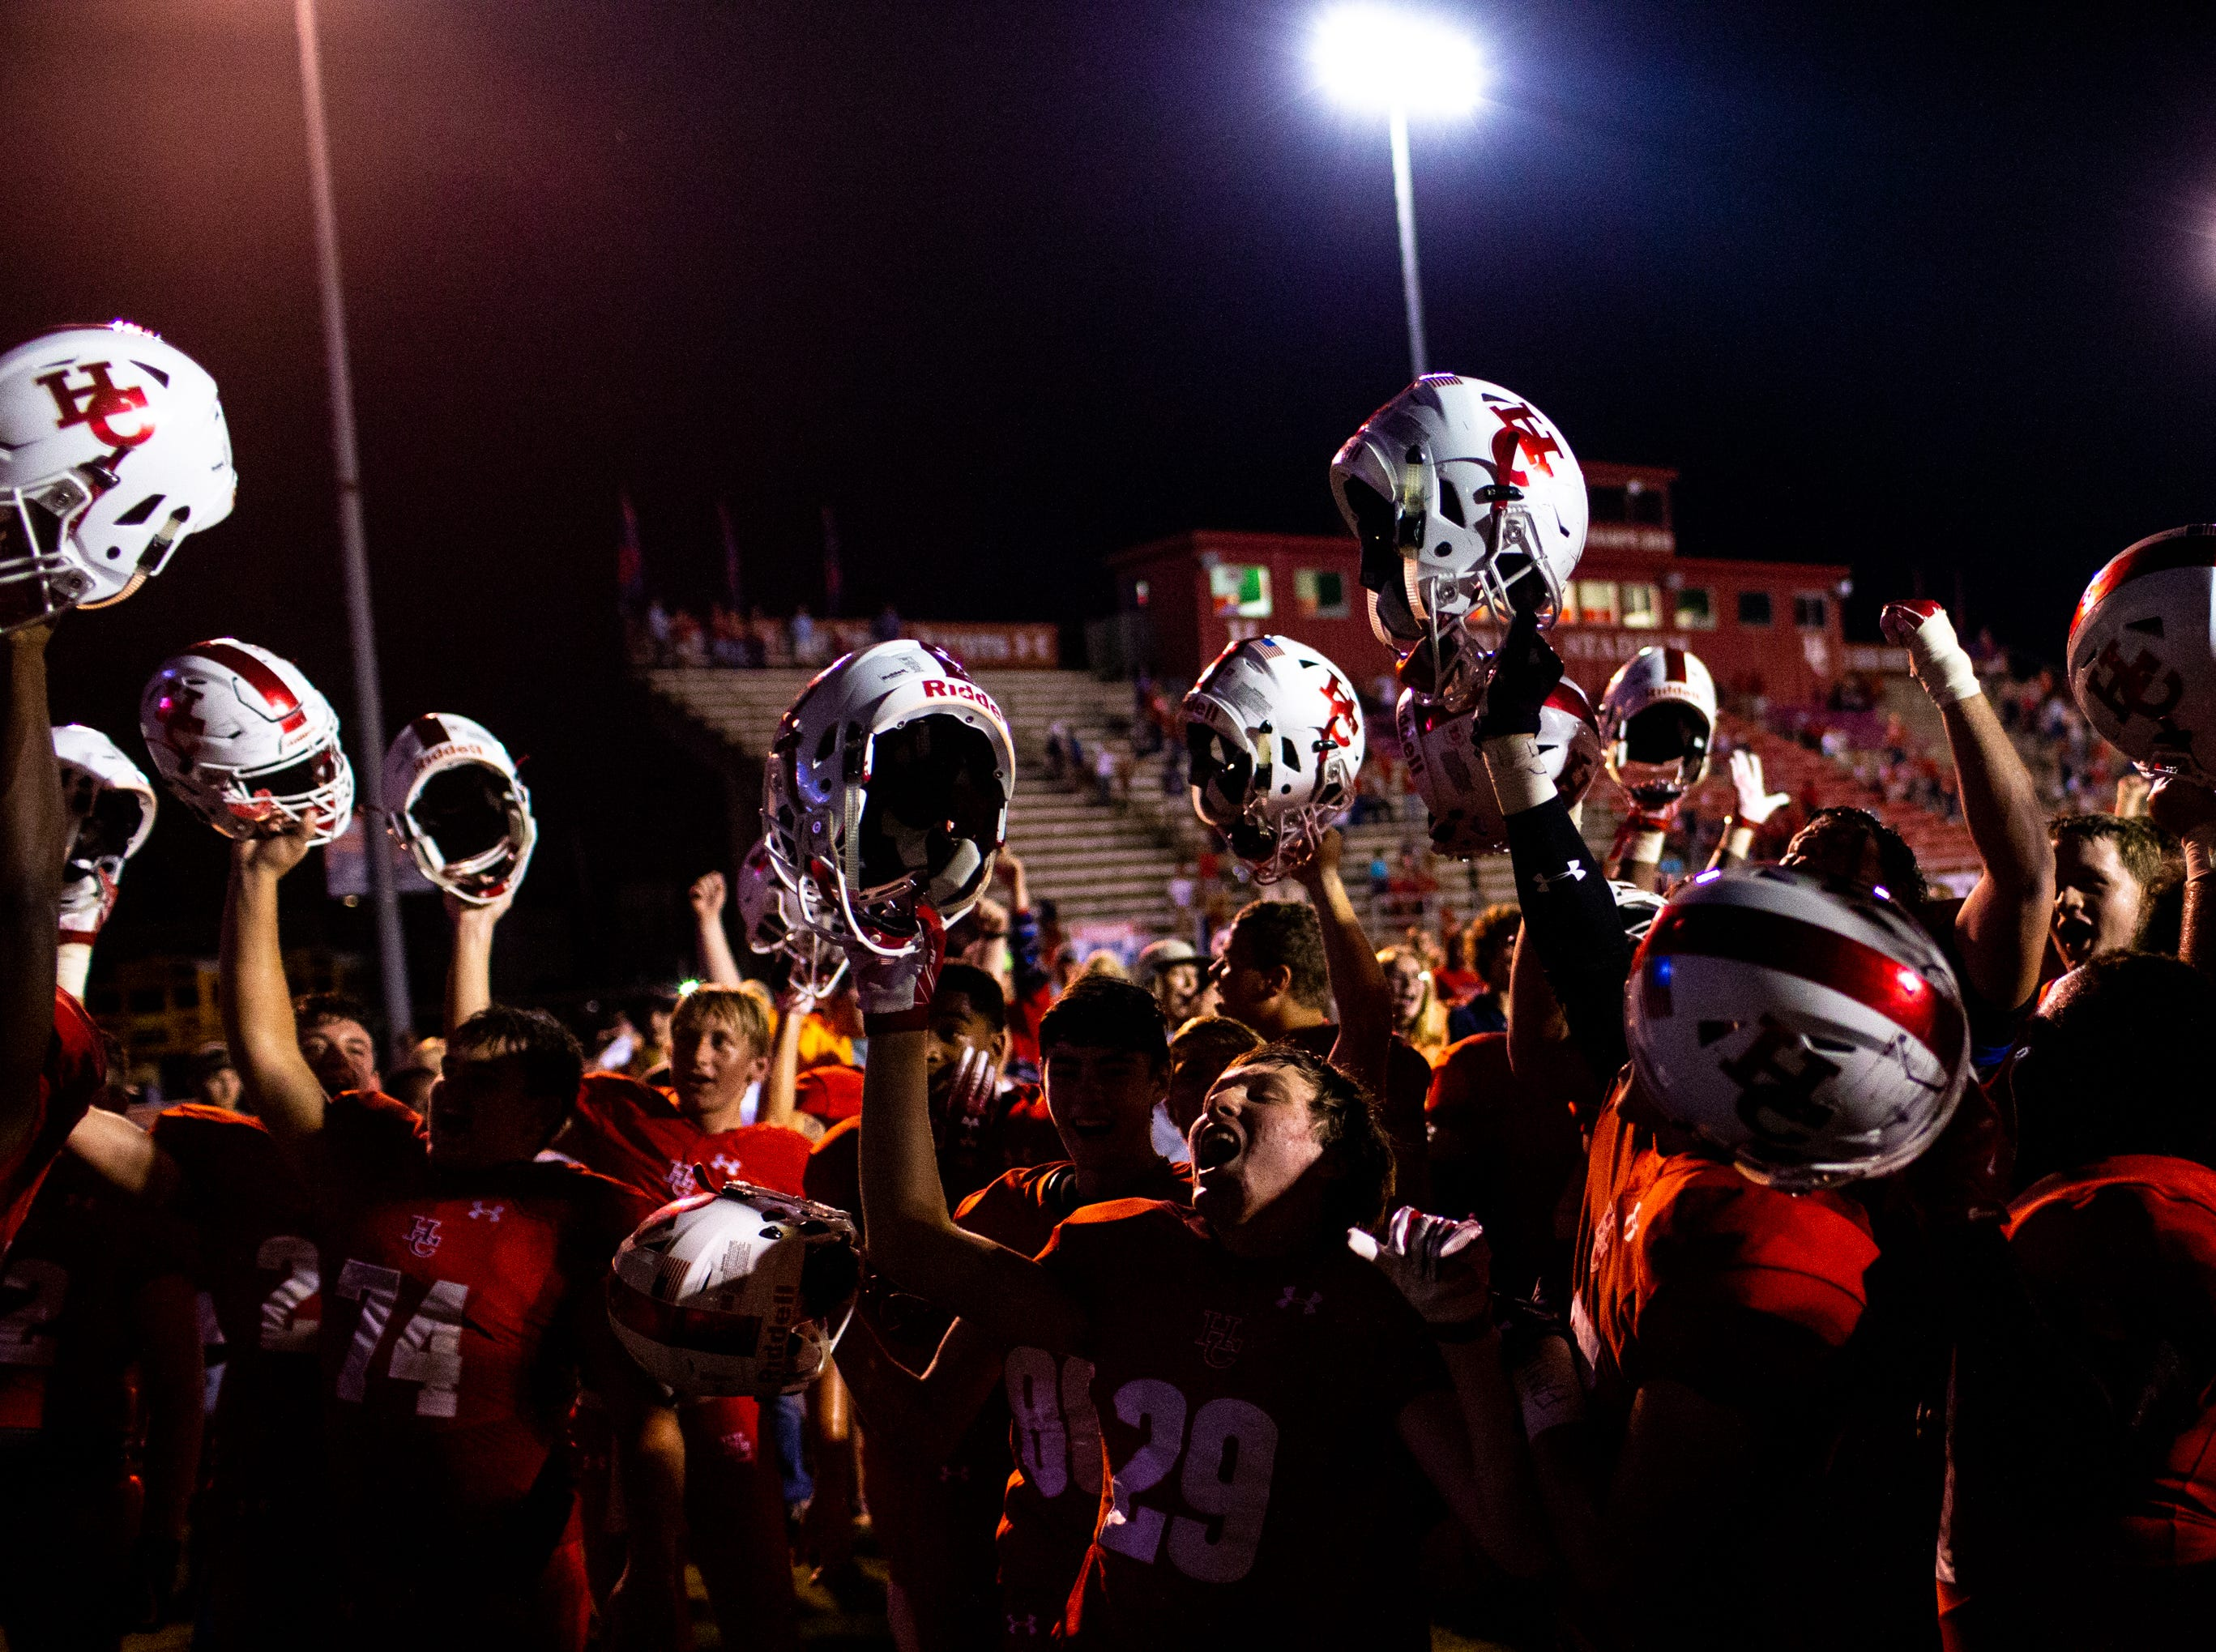 Henry County sings to celebrate their victory after the second half at Henry County Friday, Sept. 14, 2018, in Paris, Tenn.